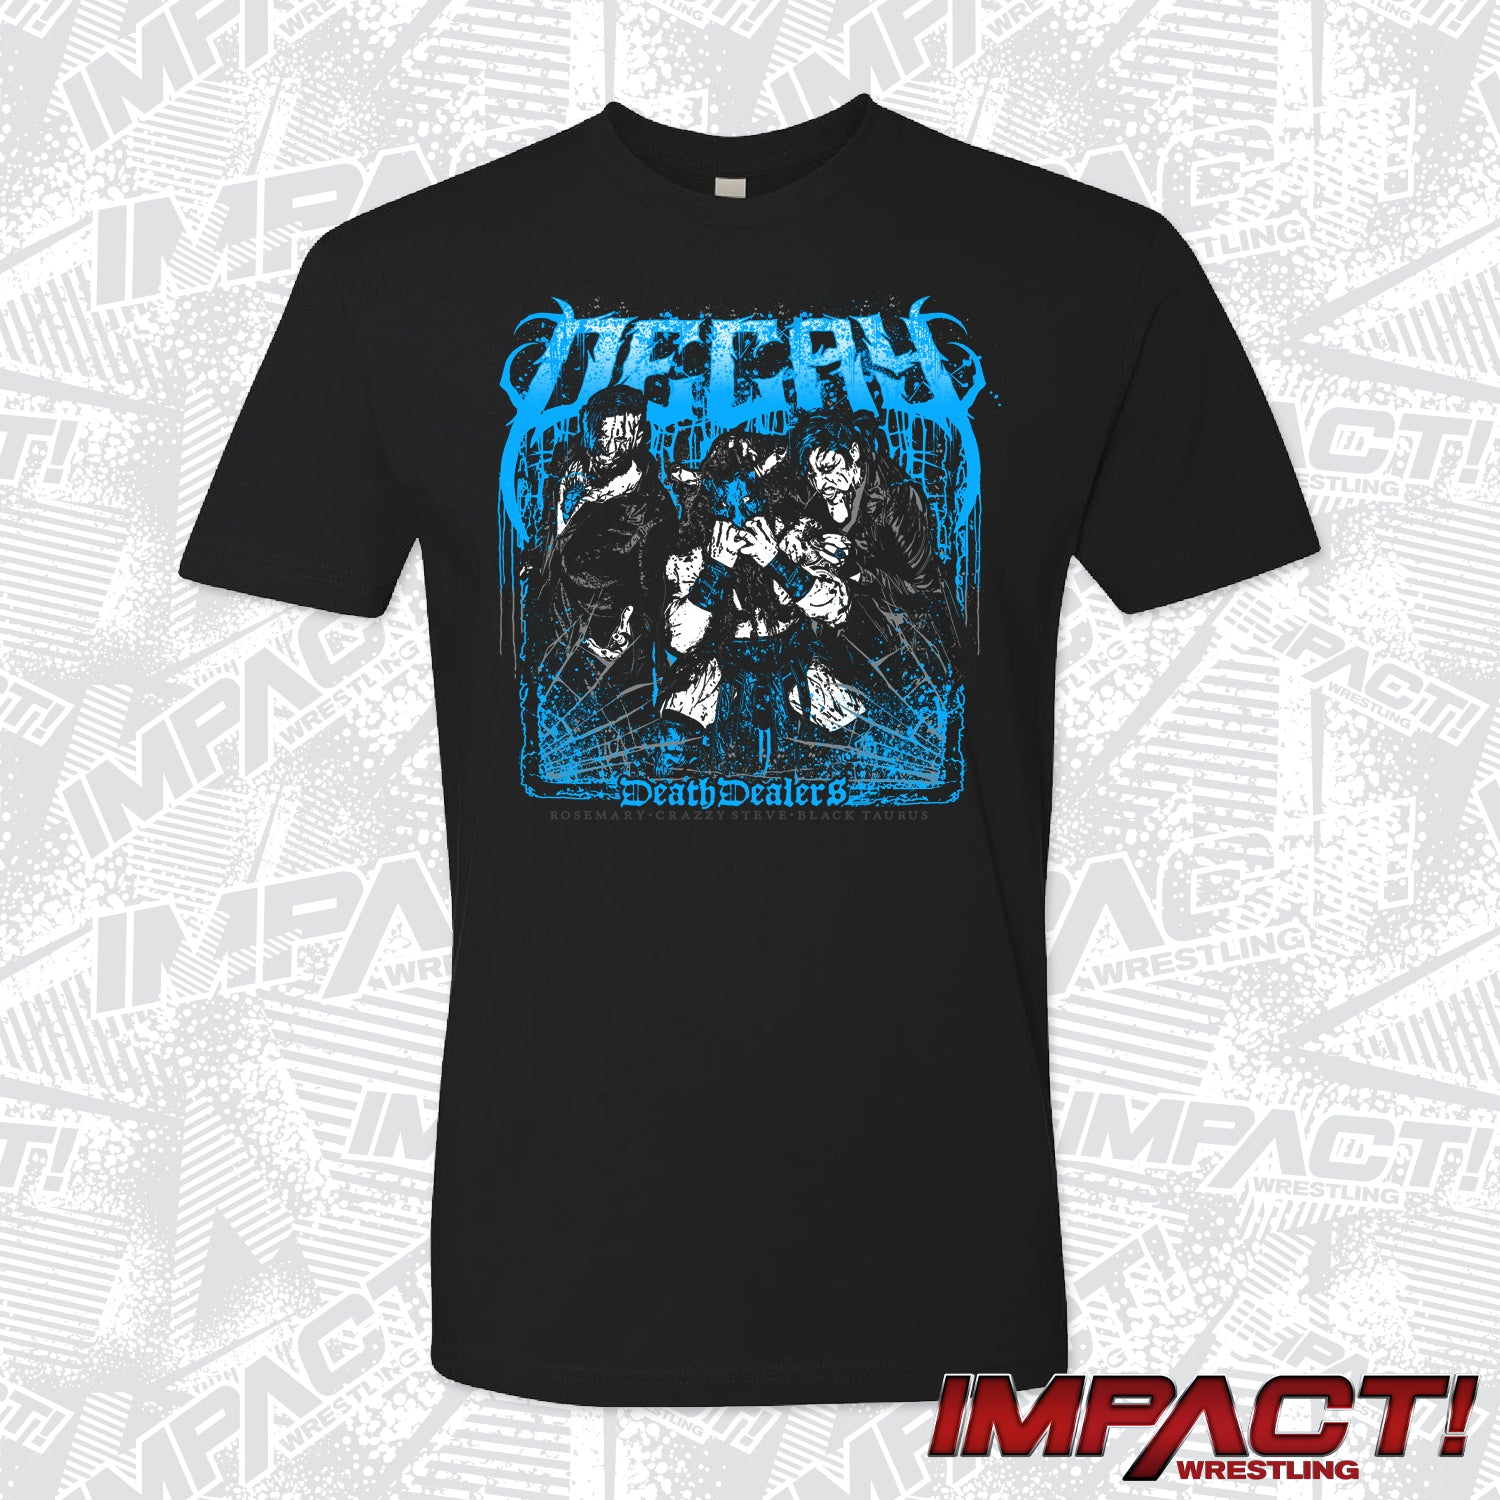 Decay (Rosemary, Crazzy Steve & Black Taurus) Death Dealers T-Shirt